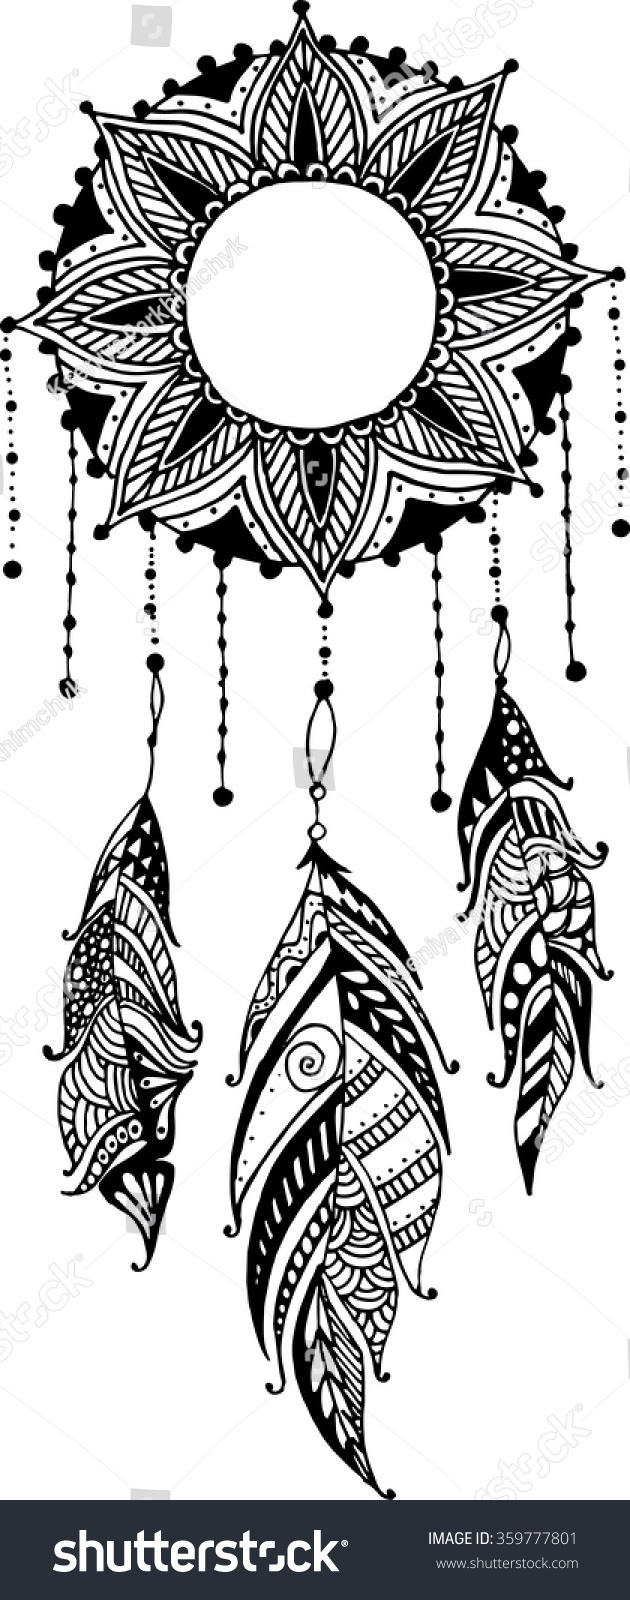 stock vector hand drawn sun mandala dreamcatcher with feathers ethnic illustration tribal american indians 359777801